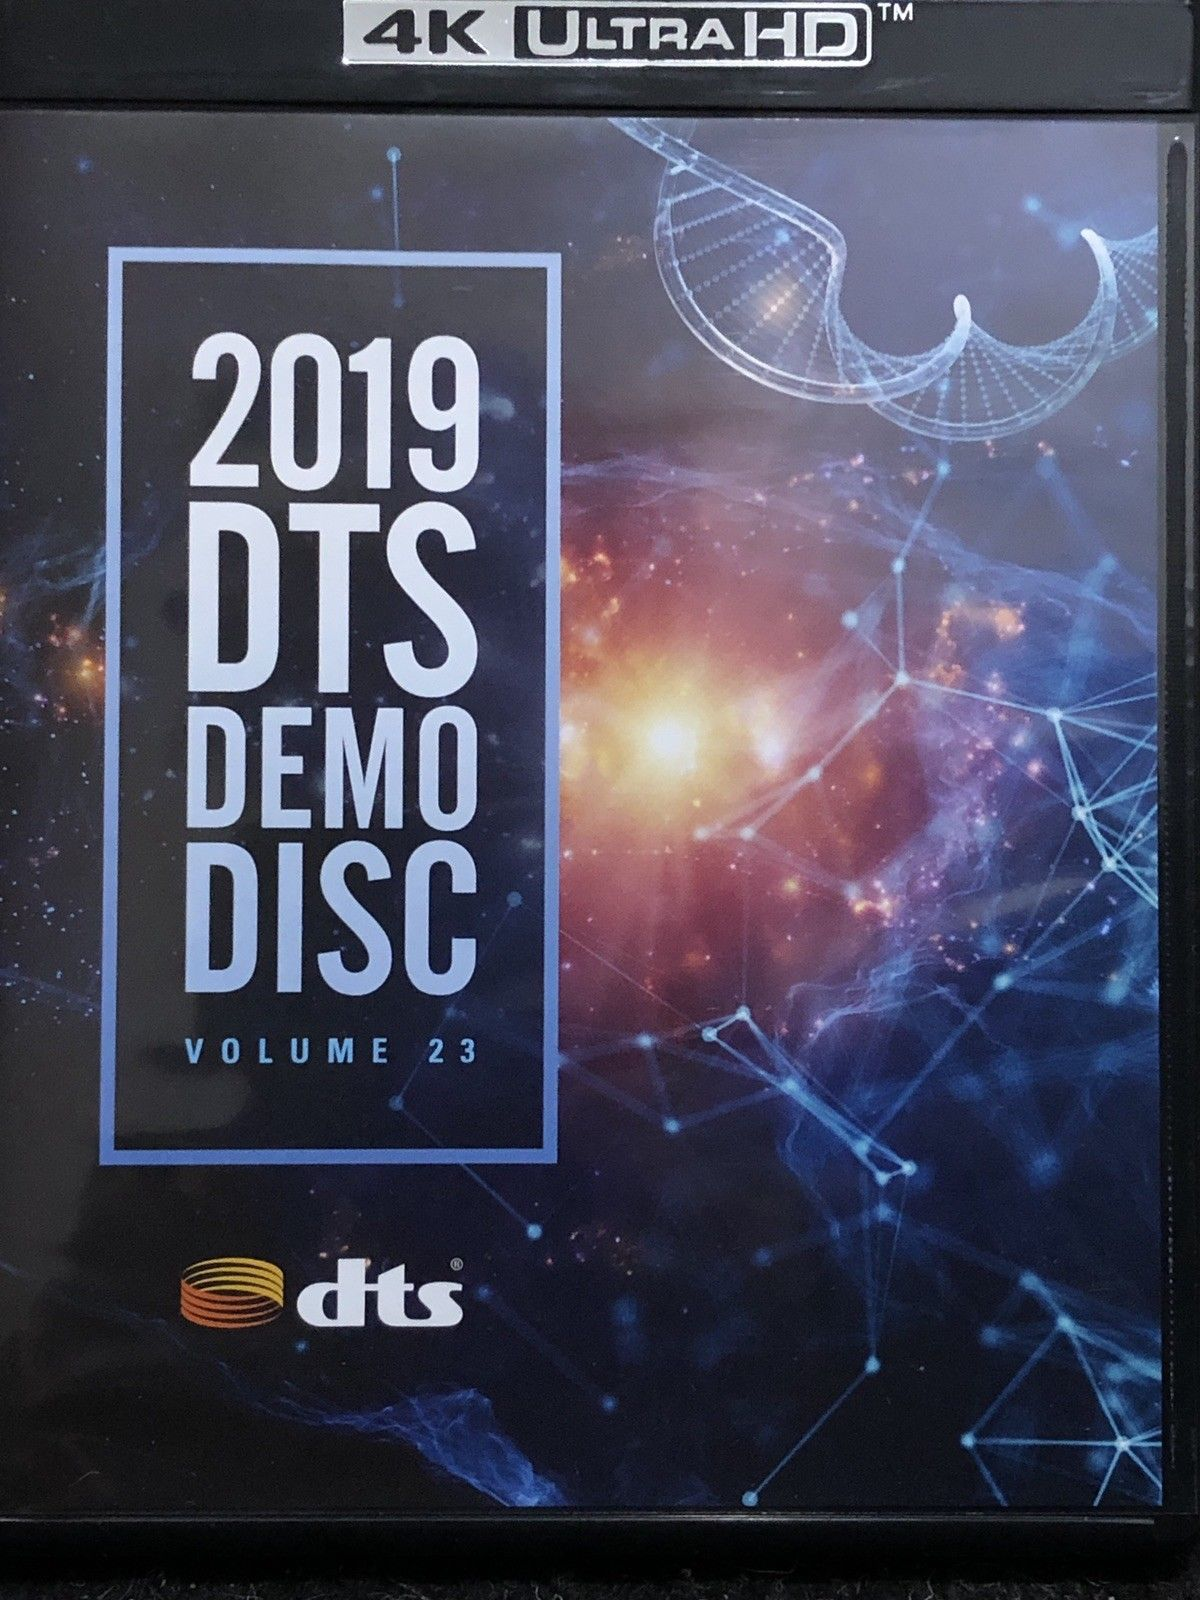 dts demo disc 2016 download